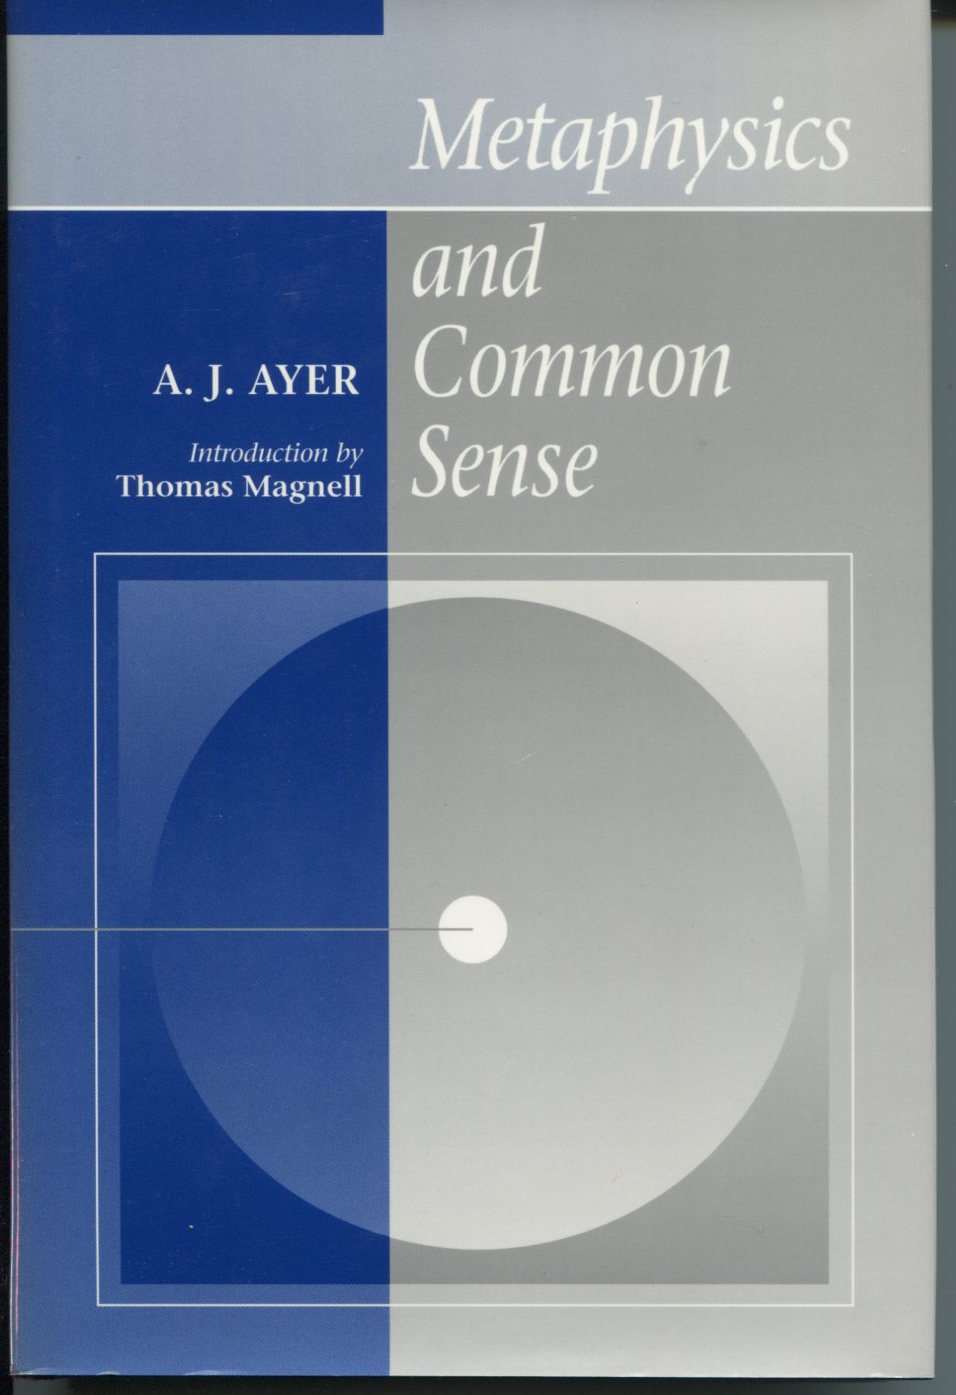 Metaphysics and Common Sense. Introduction by Thomas Magnell.